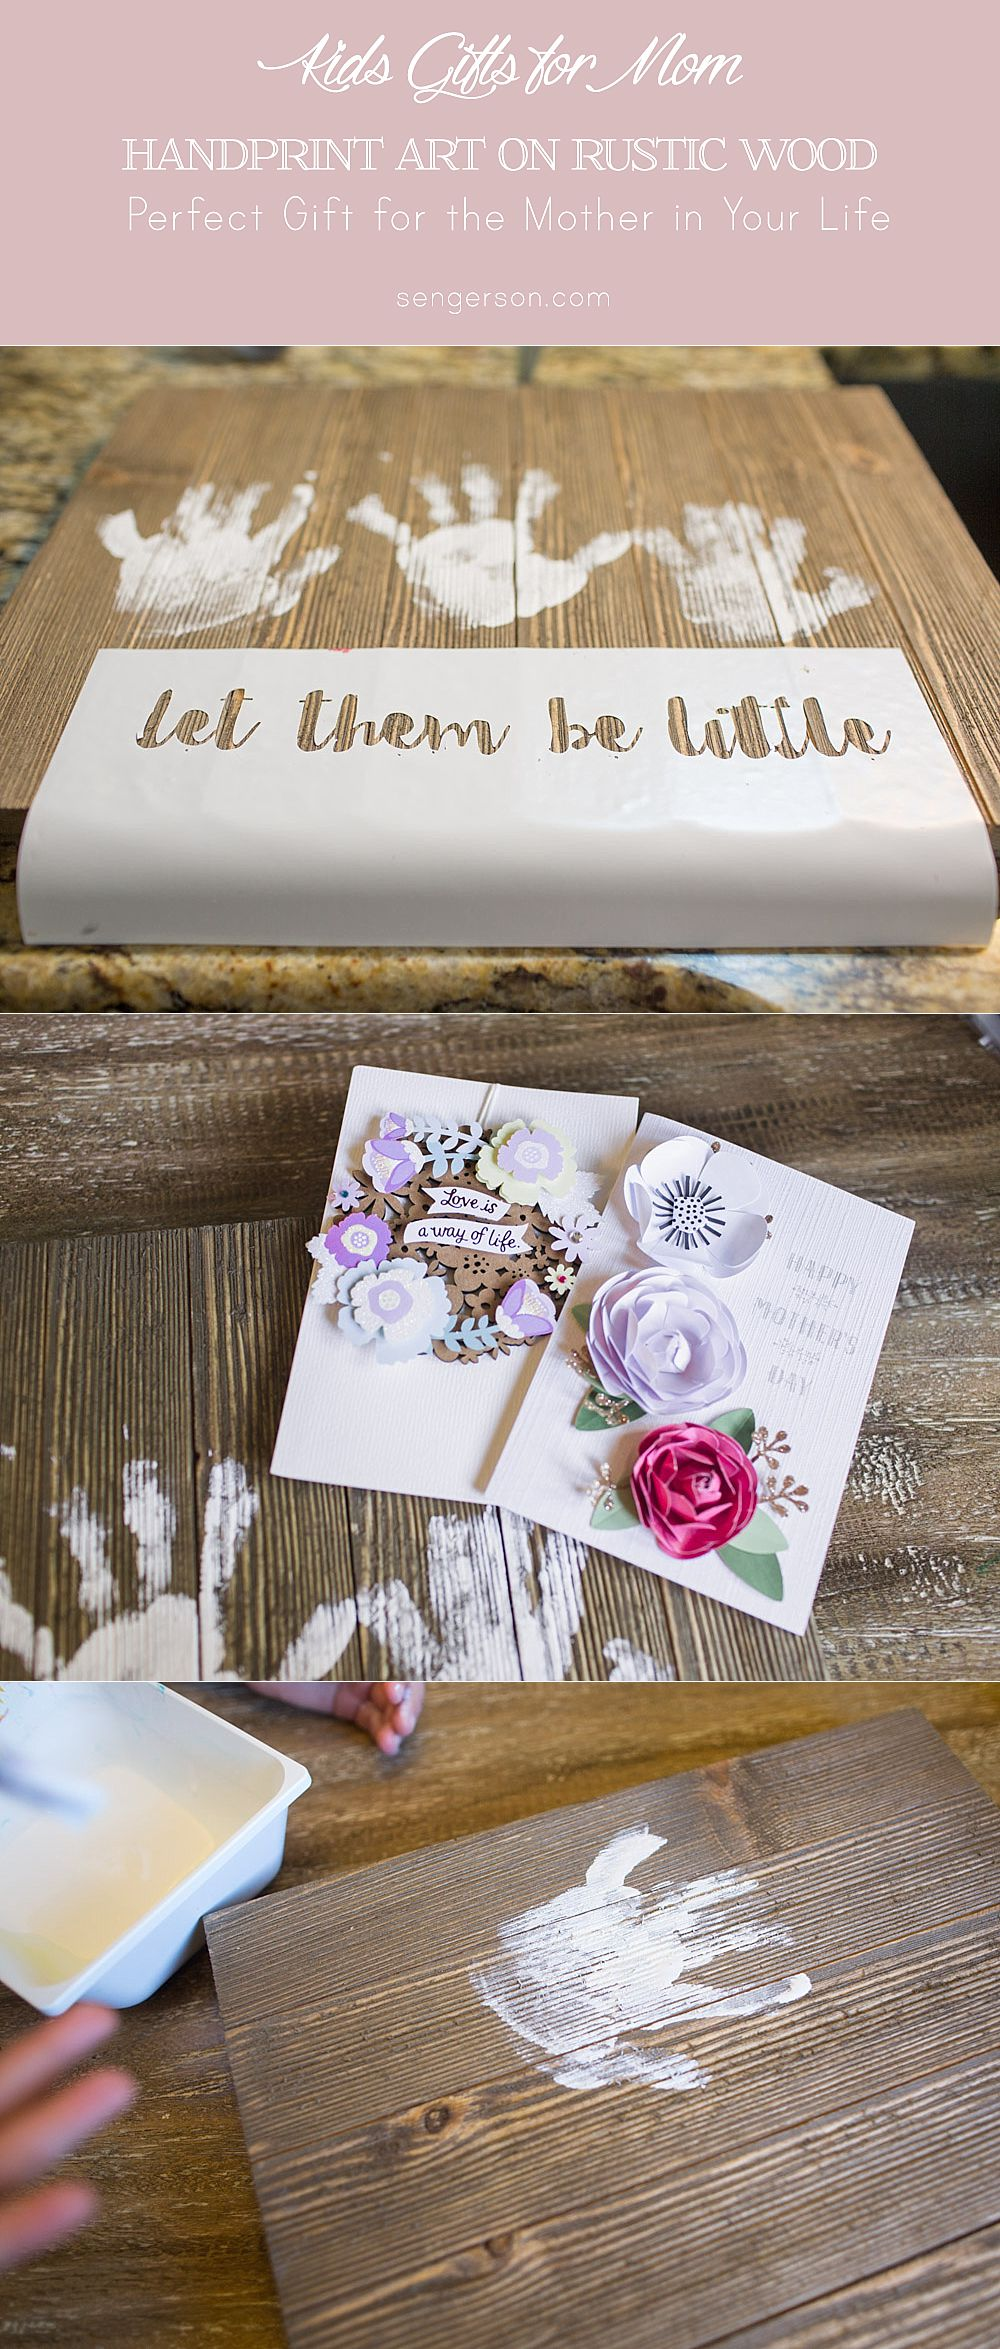 let them be little handprint wood art sign